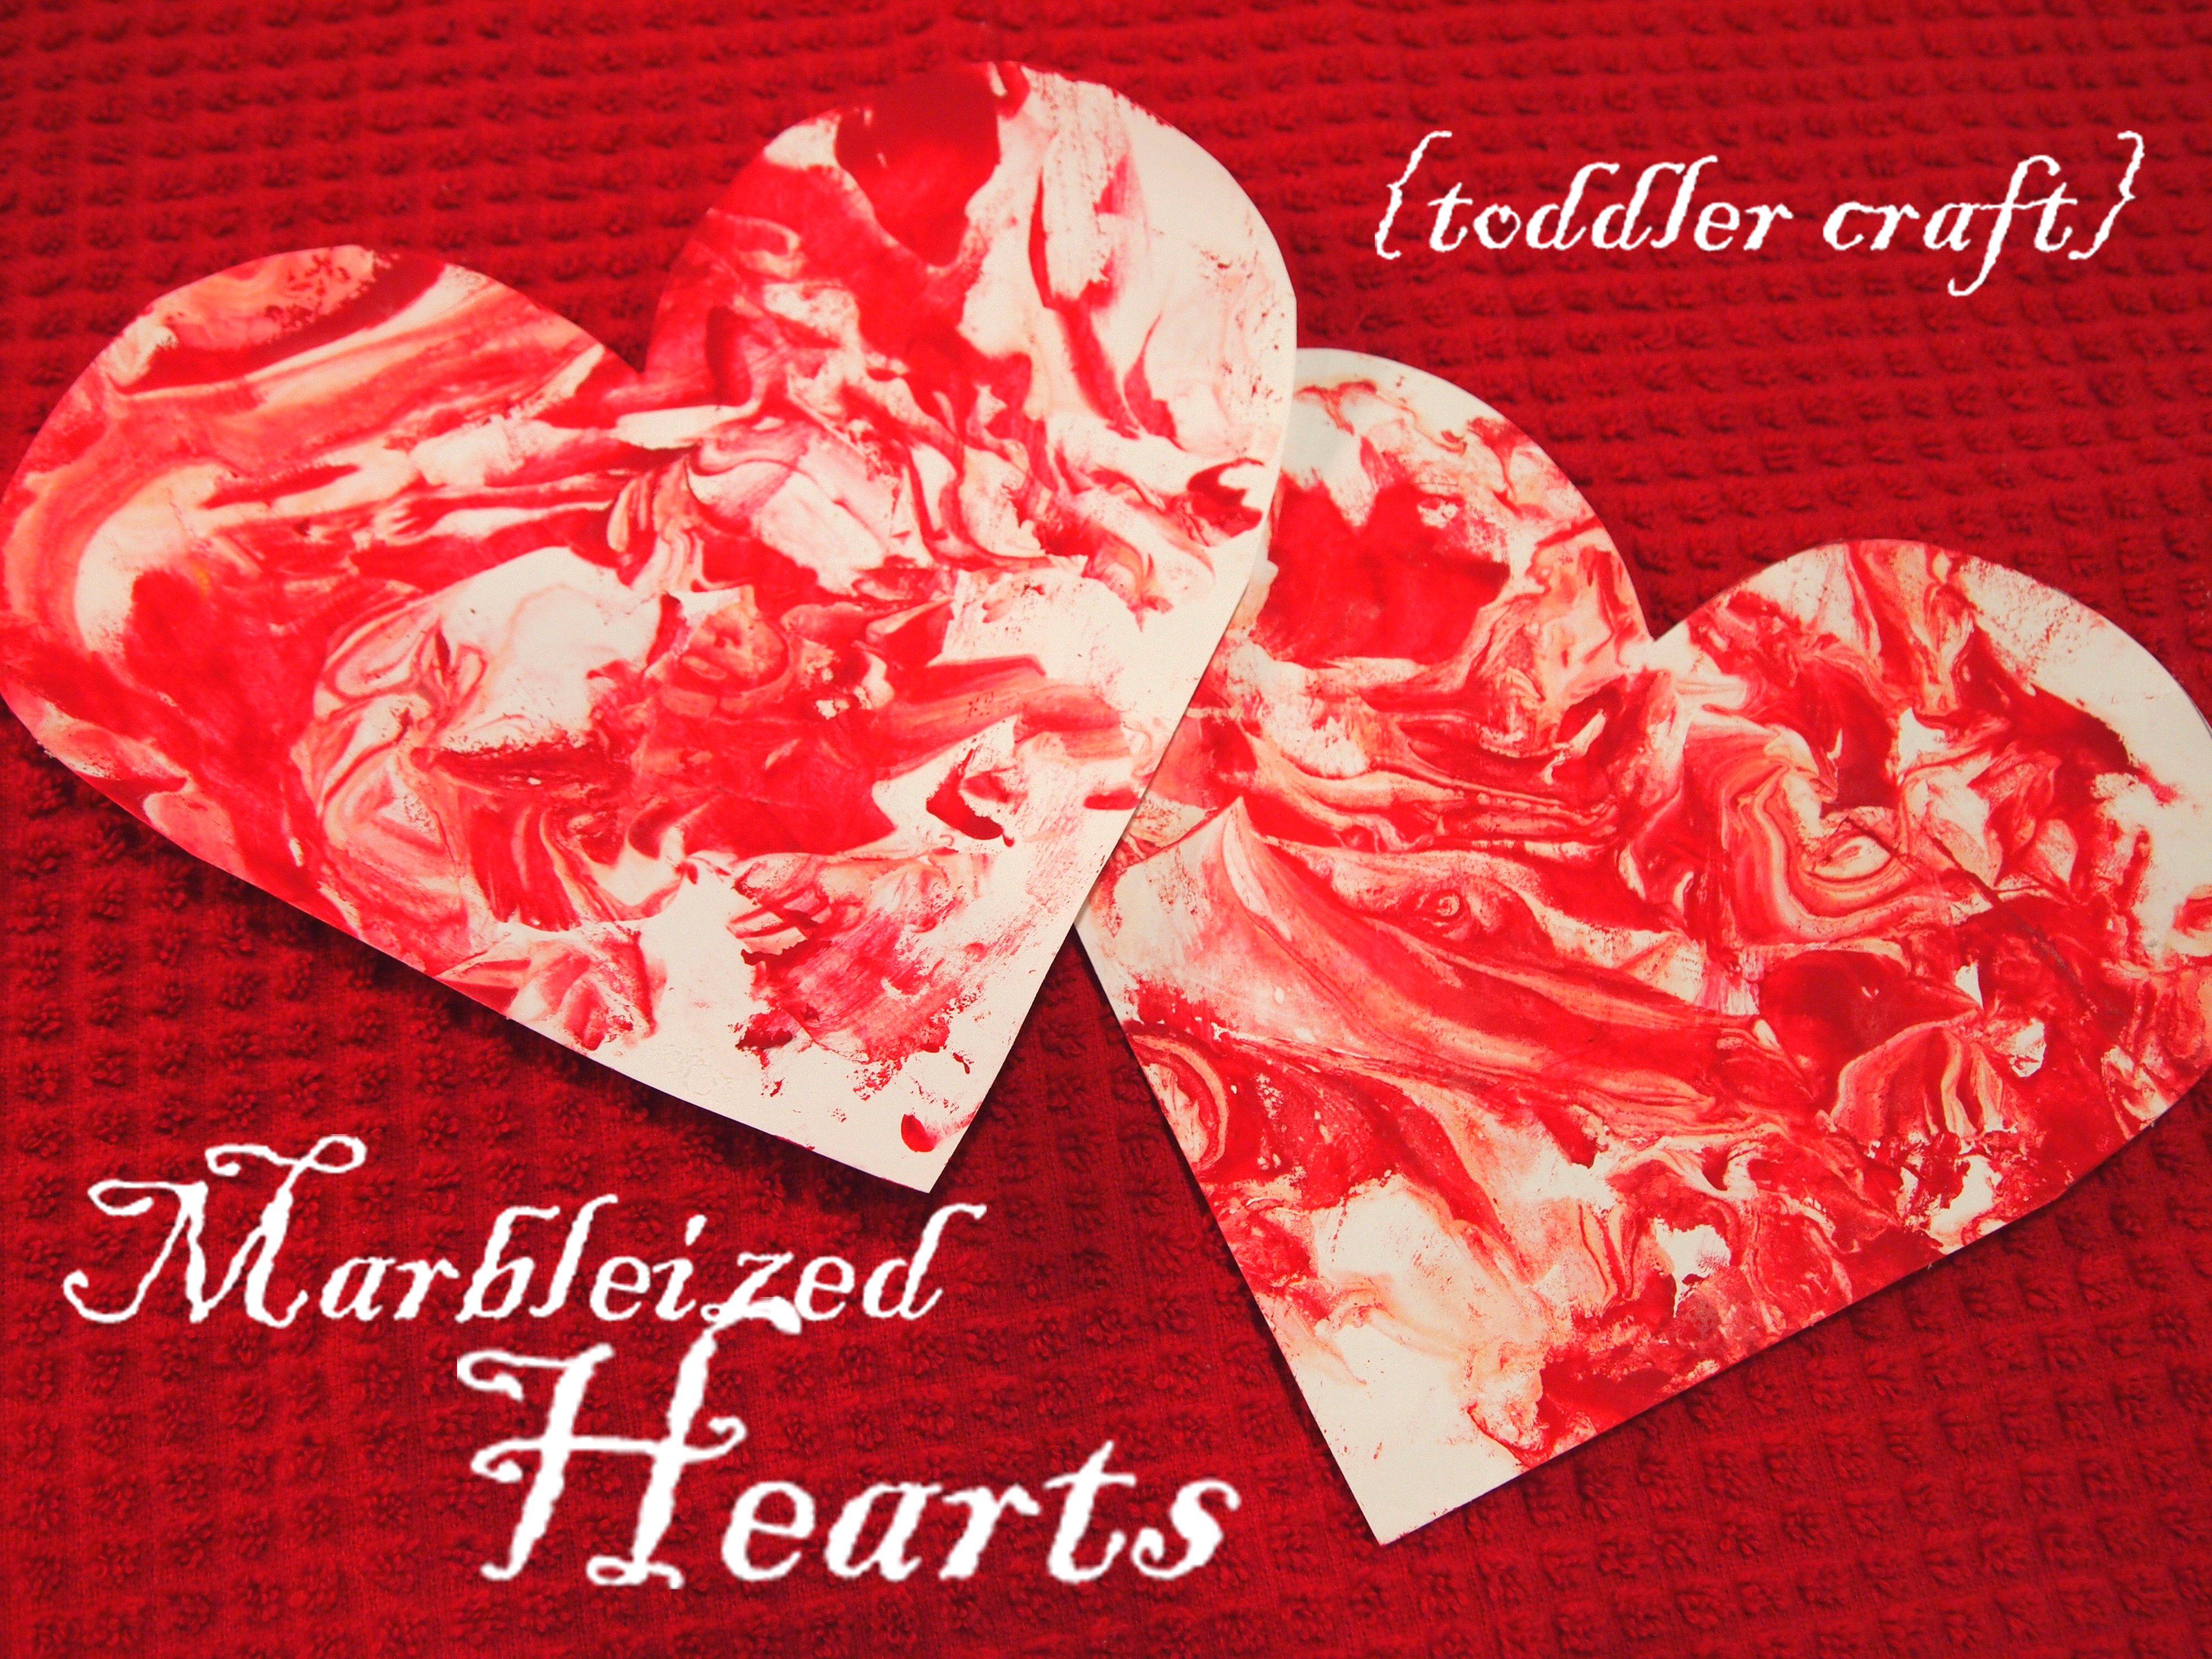 Marbleized Hearts